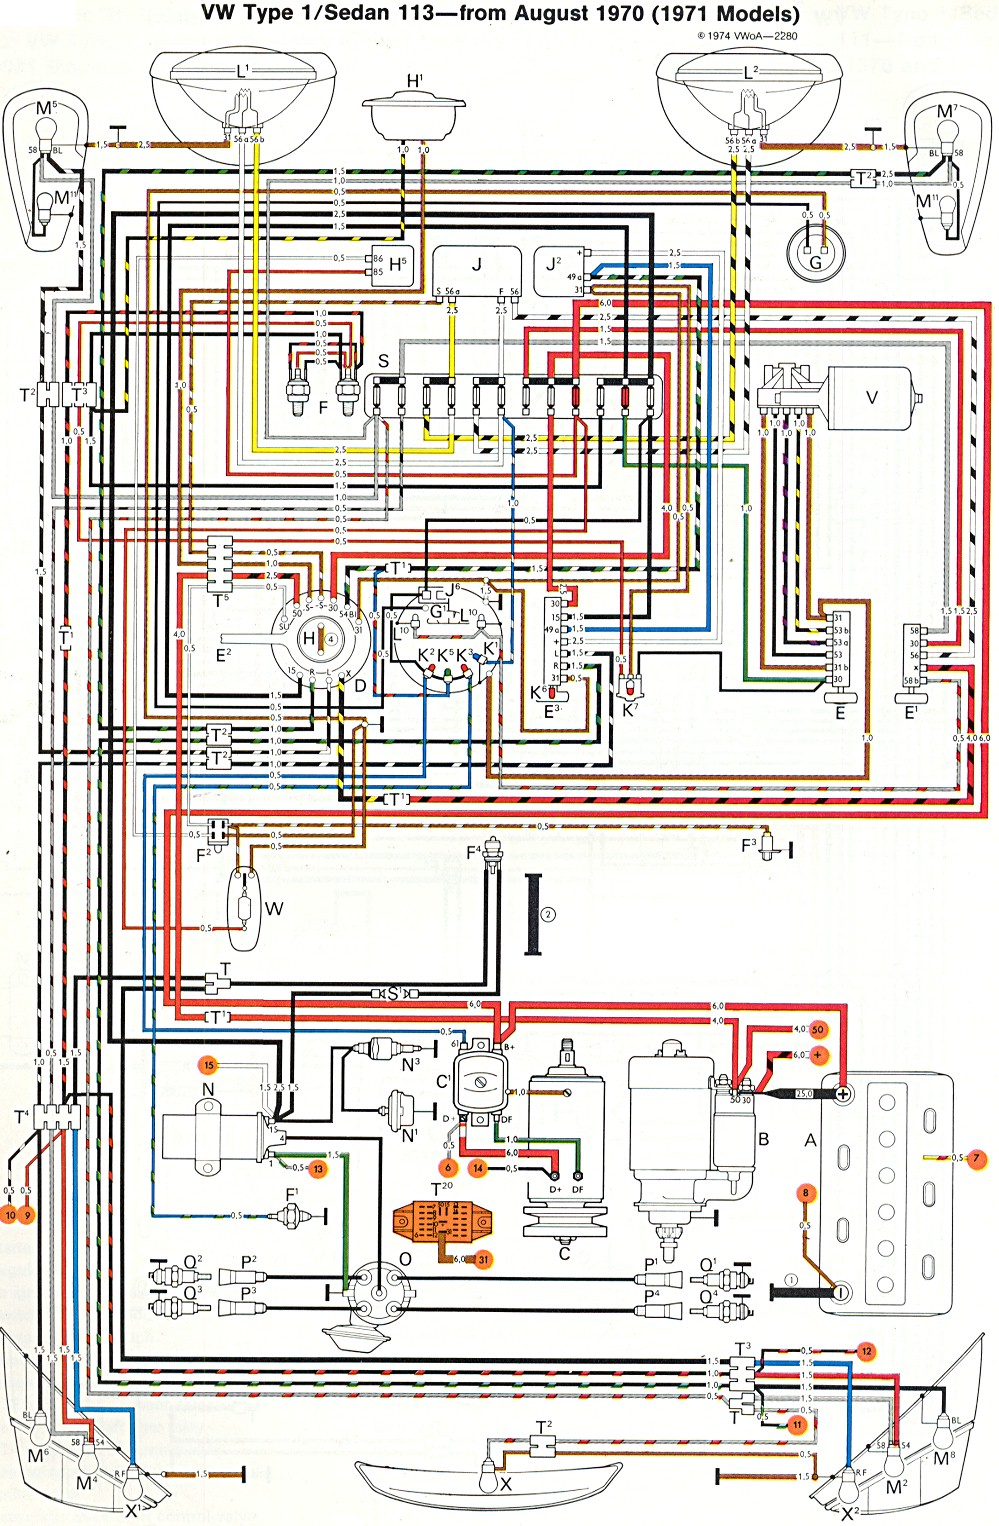 bug_super_71 1971 super beetle wiring diagram thegoldenbug com vw wiring diagrams at readyjetset.co